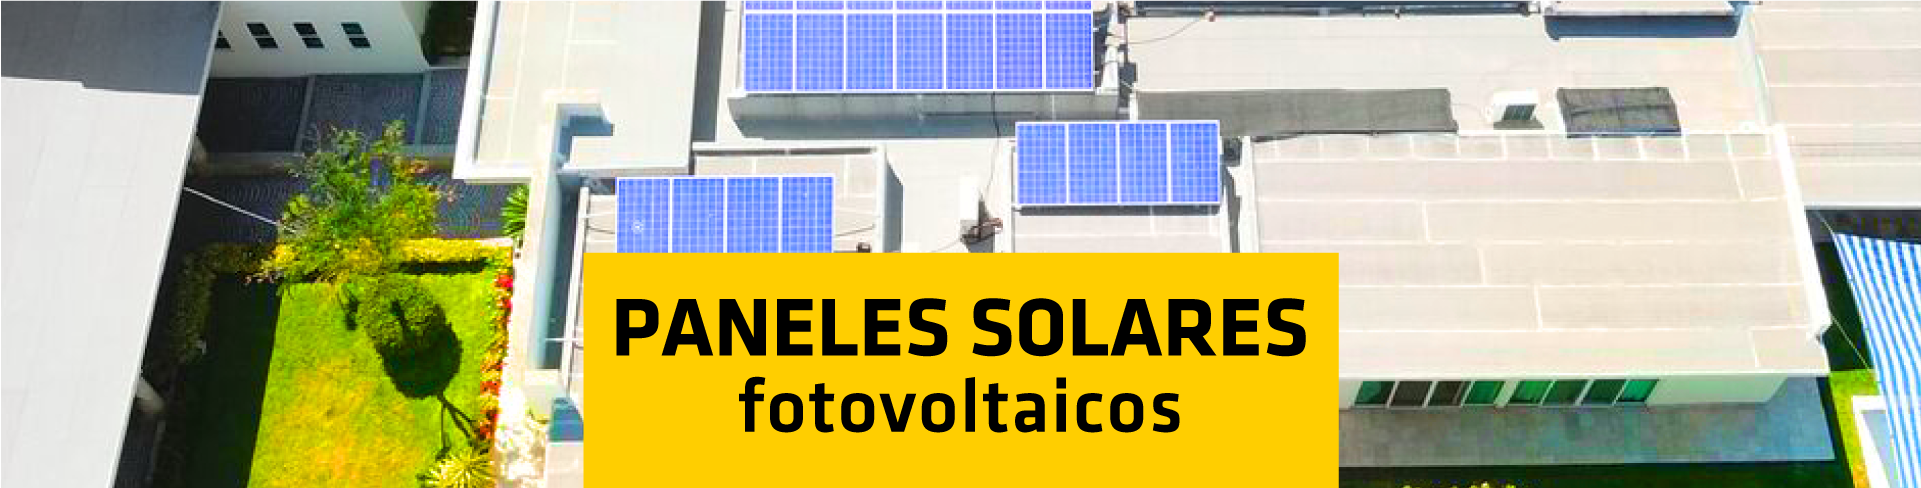 banner-paneles-solares-Solares